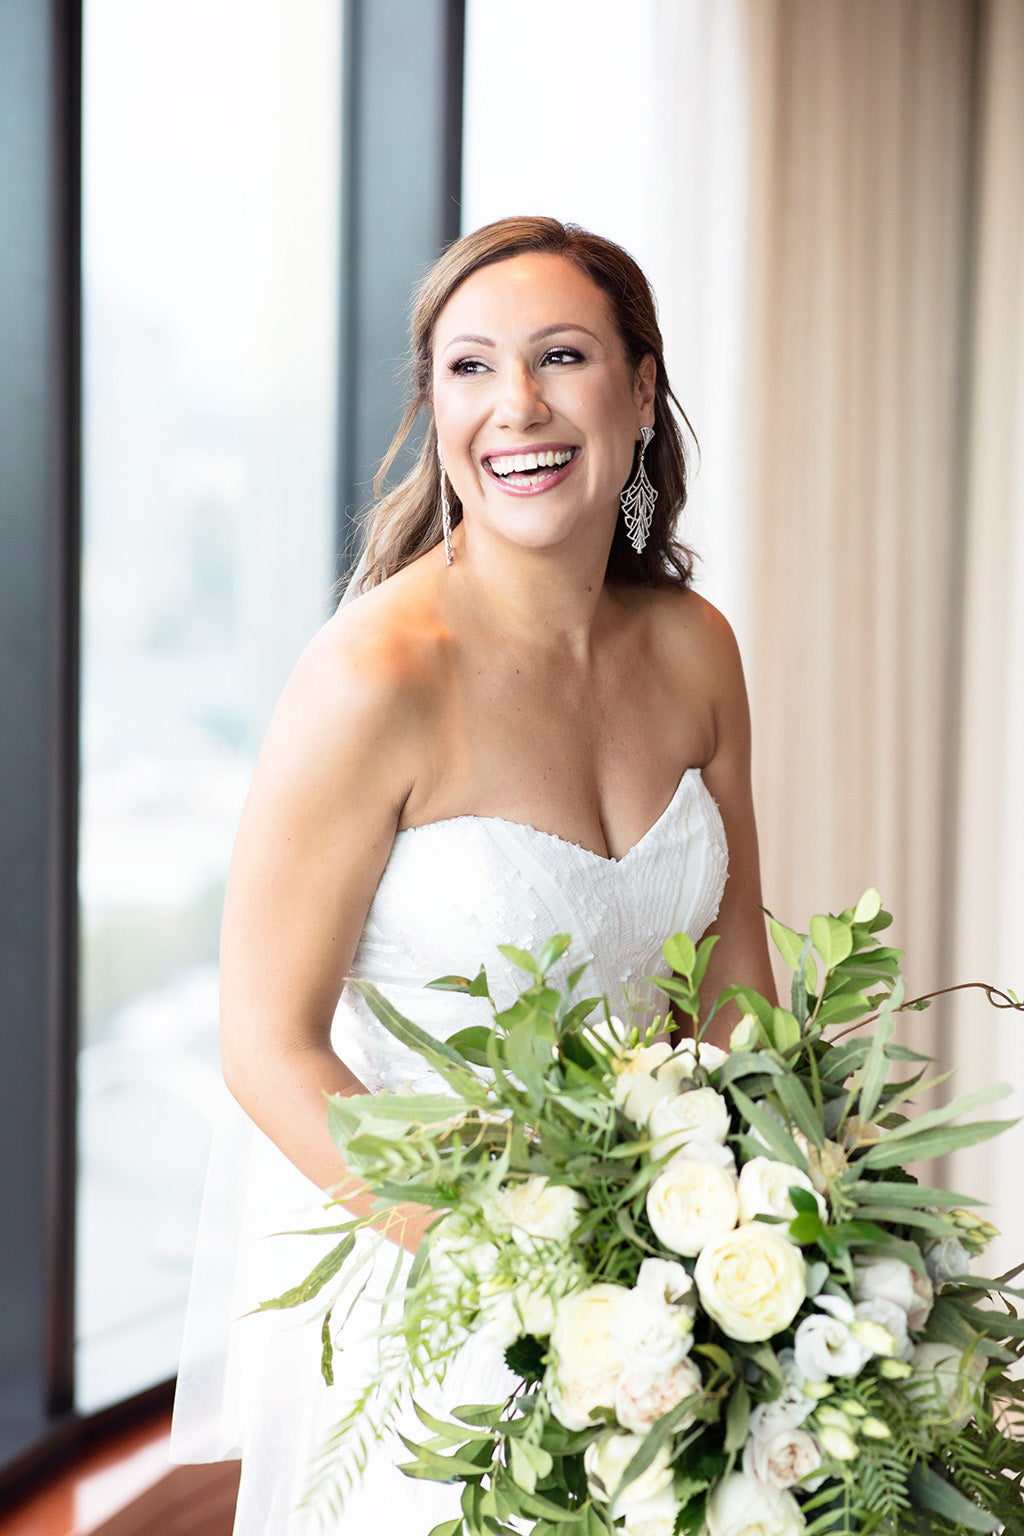 Bride with her wedding bouquet flowers